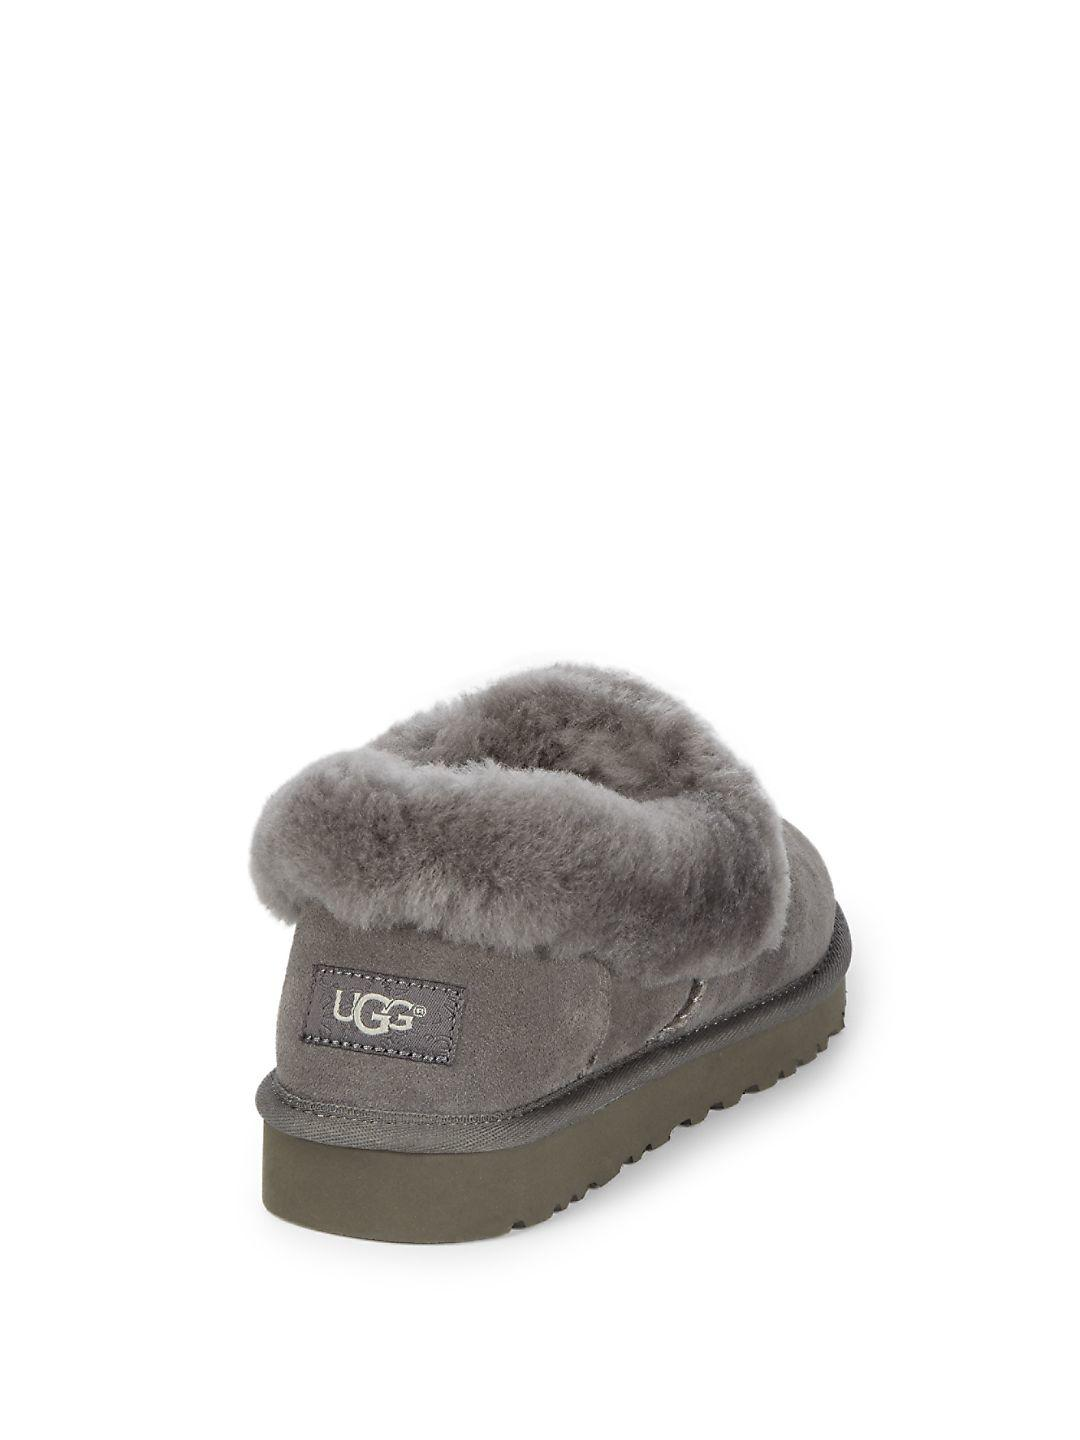 0ef4295a6bd Lyst - UGG Nita Leather Slippers in Gray